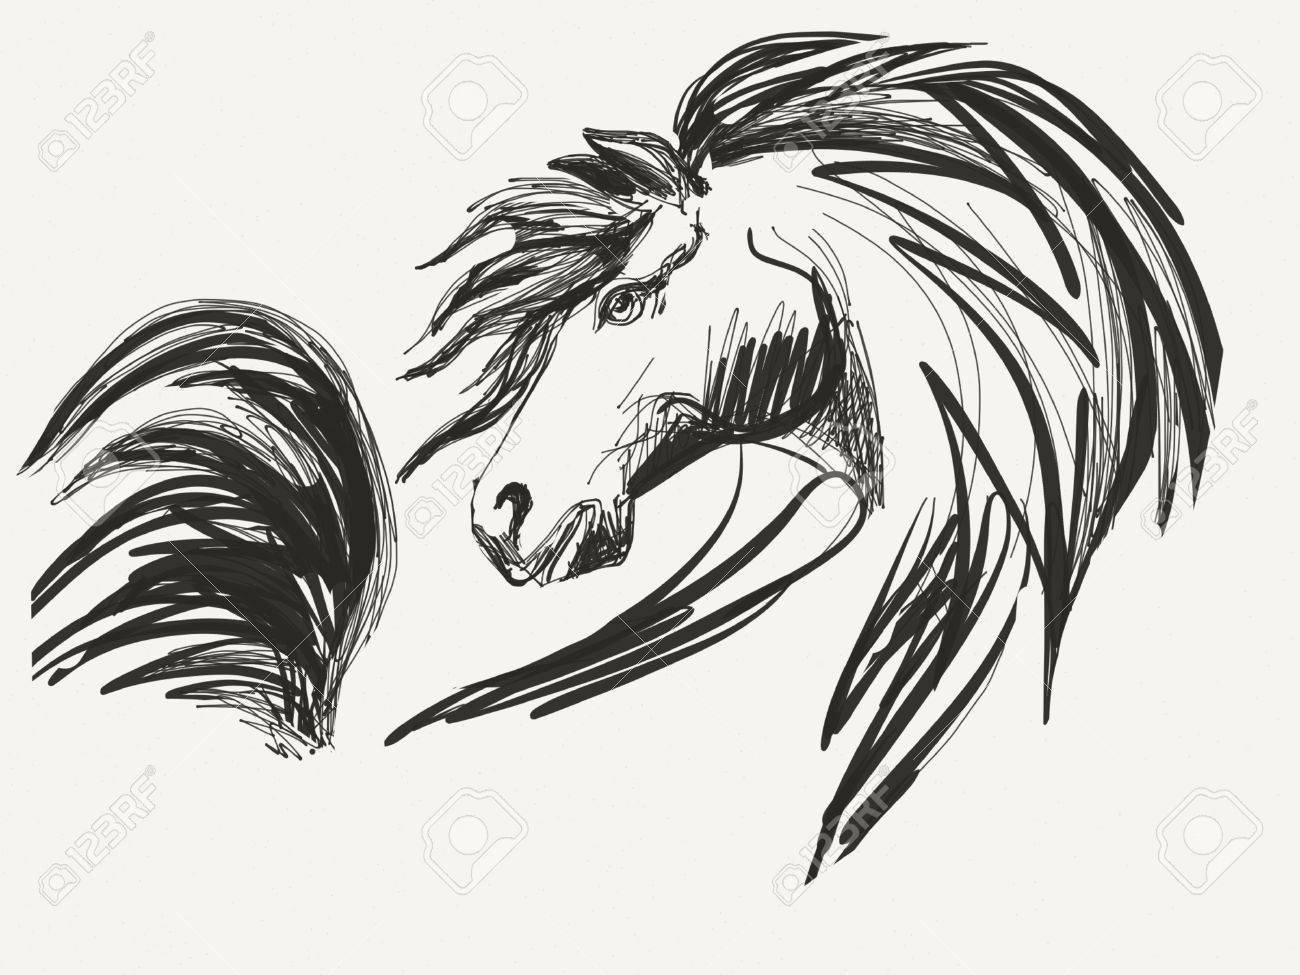 Horse Head Drawing Stock Photo Picture And Royalty Free Image Image 57313984